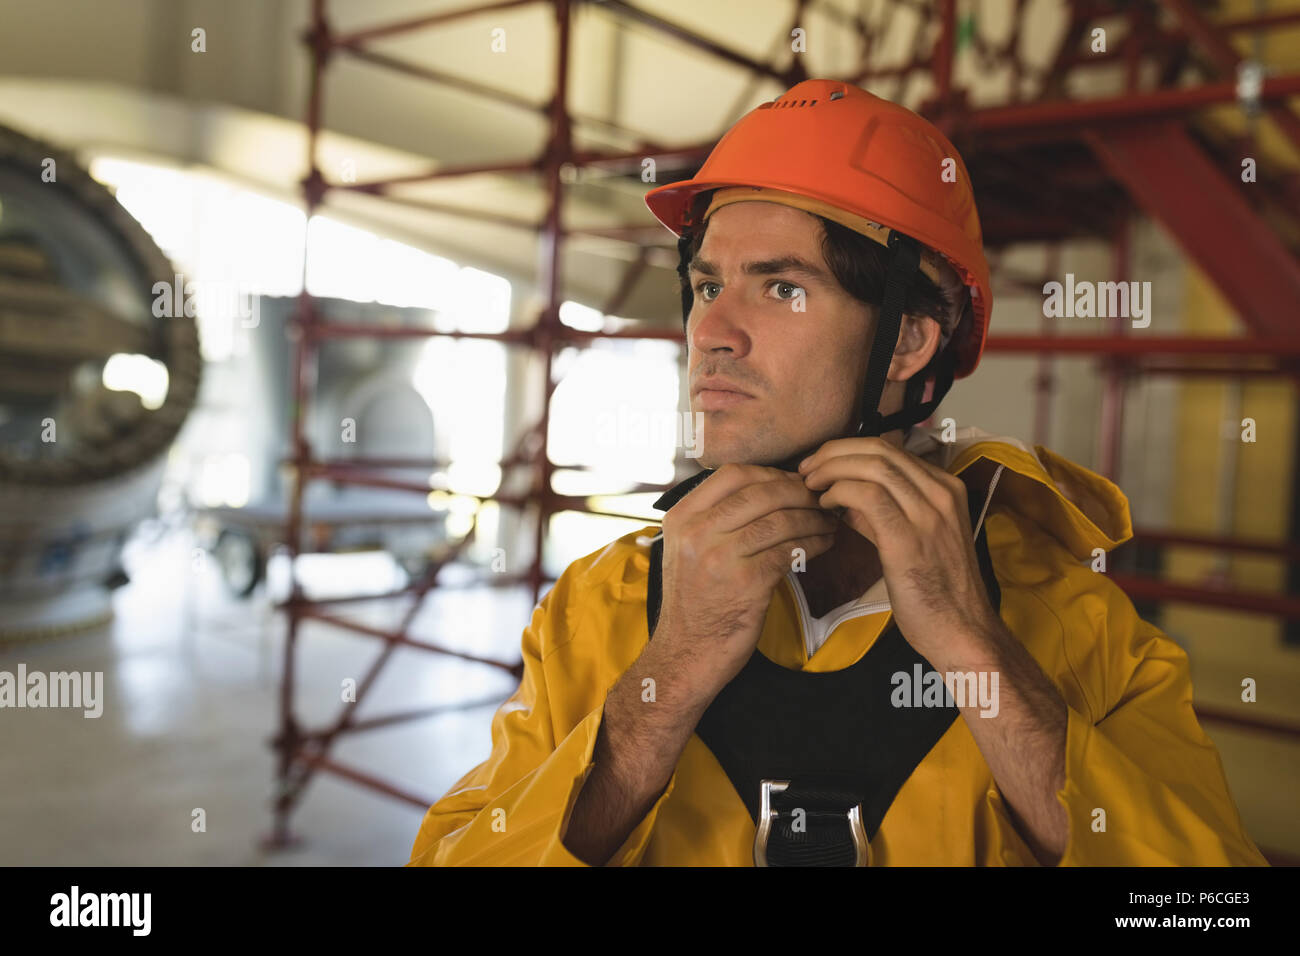 Male worker wearing hard hat at solar station - Stock Image